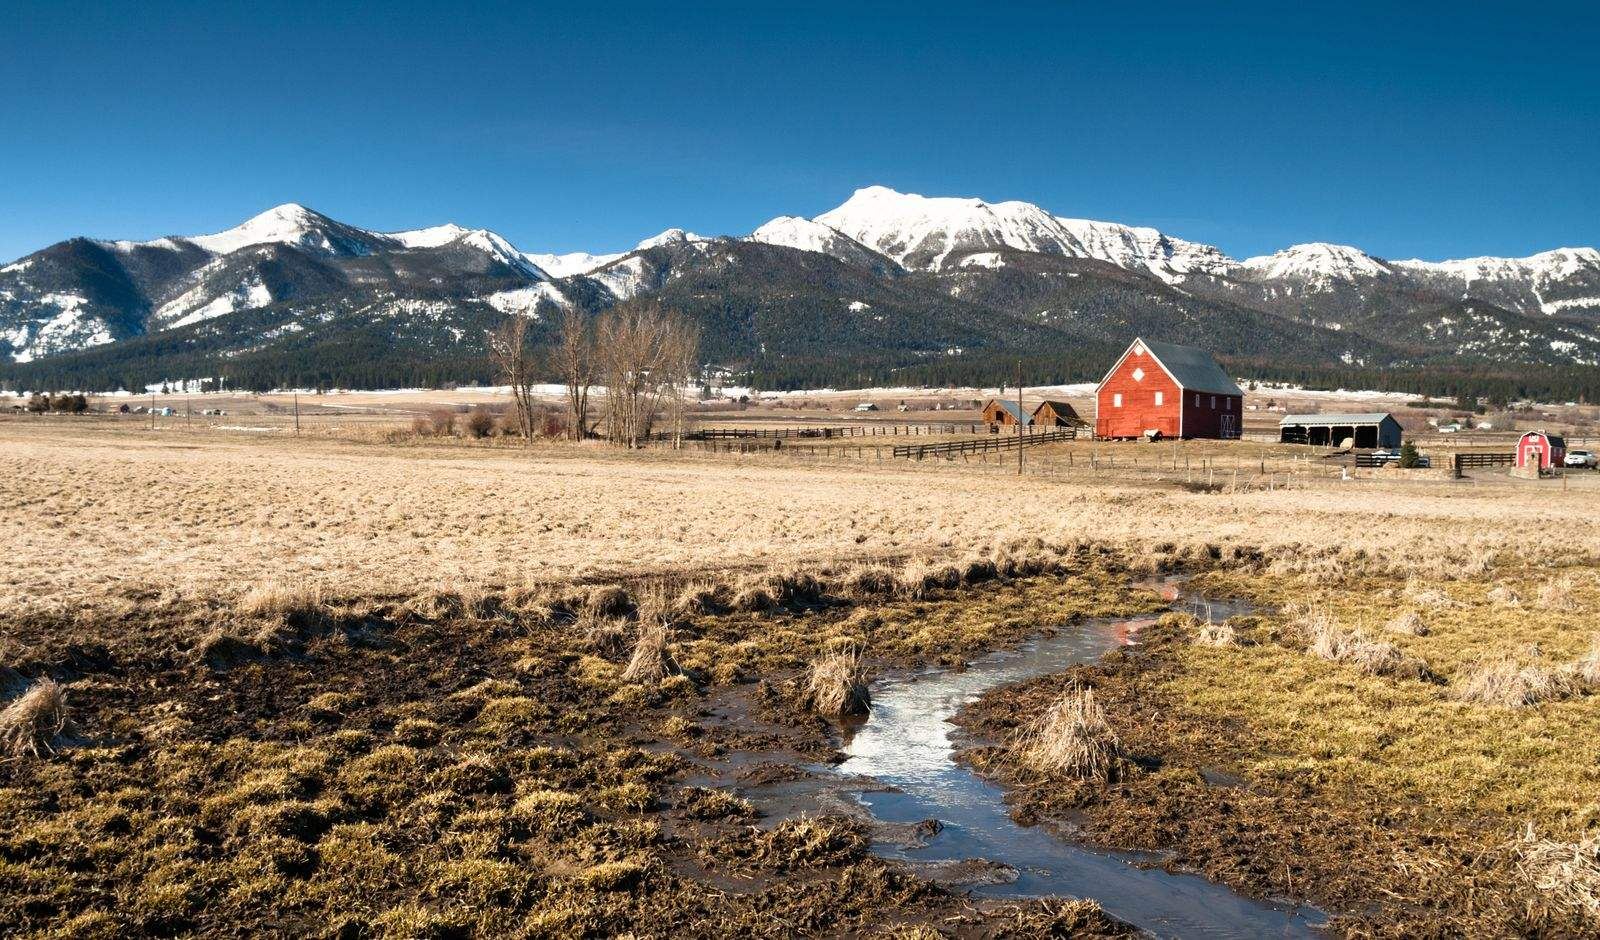 Be sure to check out the barn huts at Wallowa on your Oregon road trip.